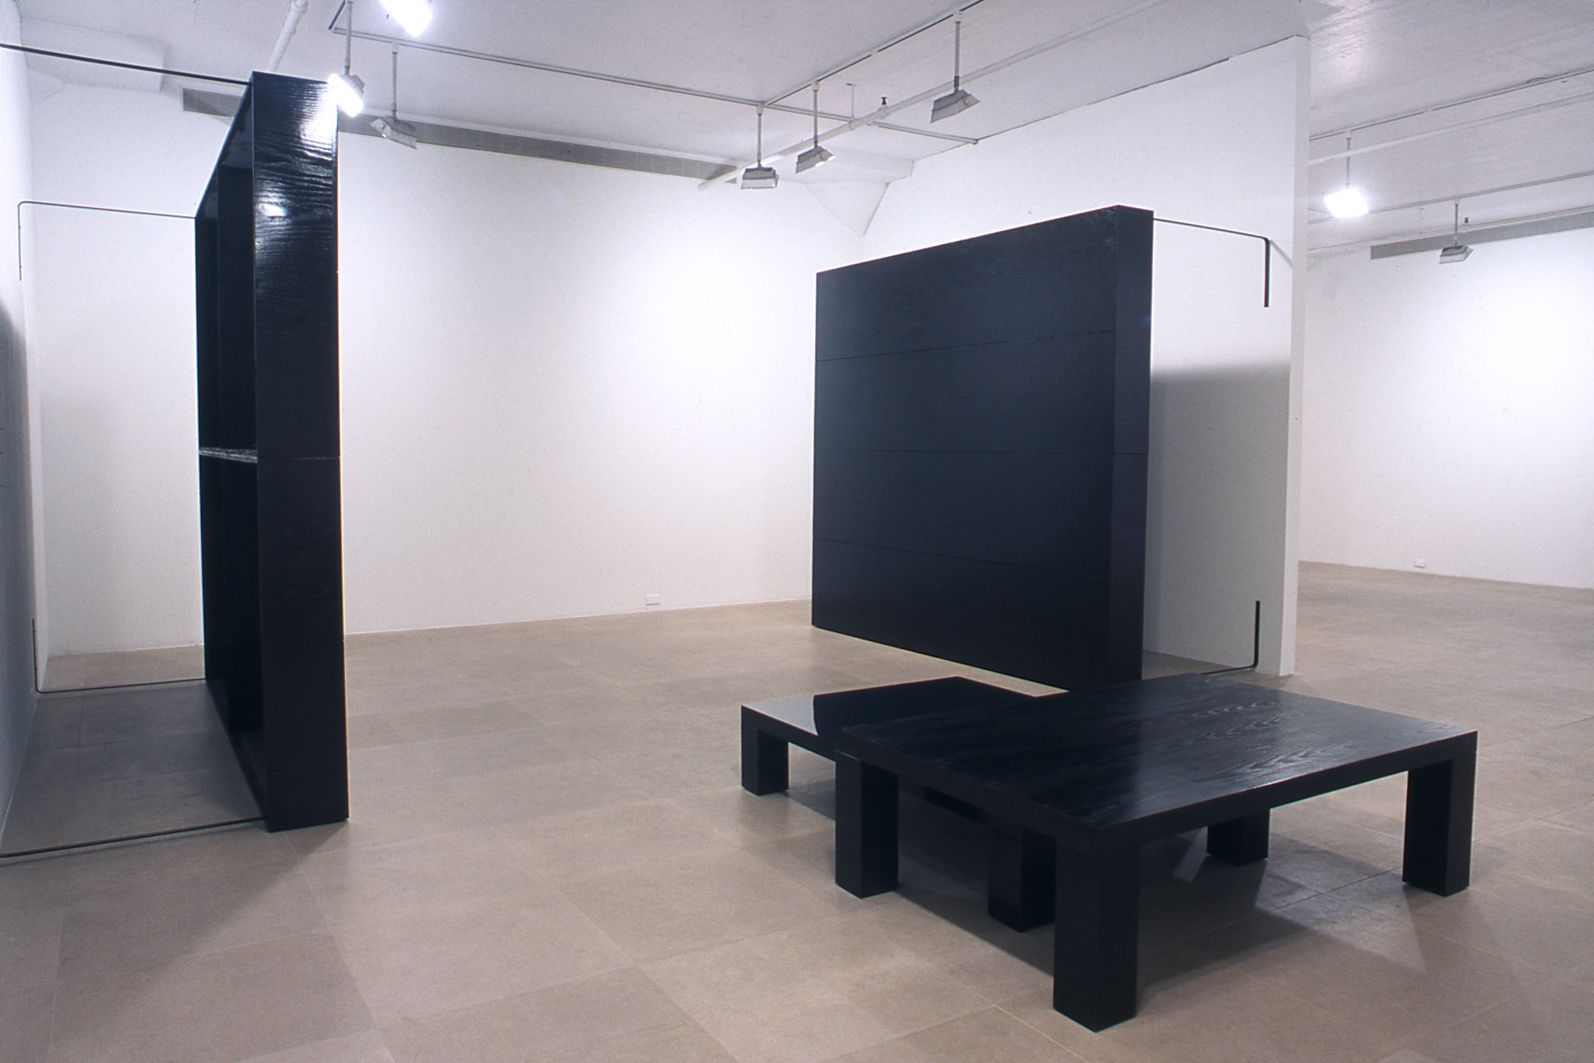 Installation view, Dog Days, Greene Naftali, New York, 2002